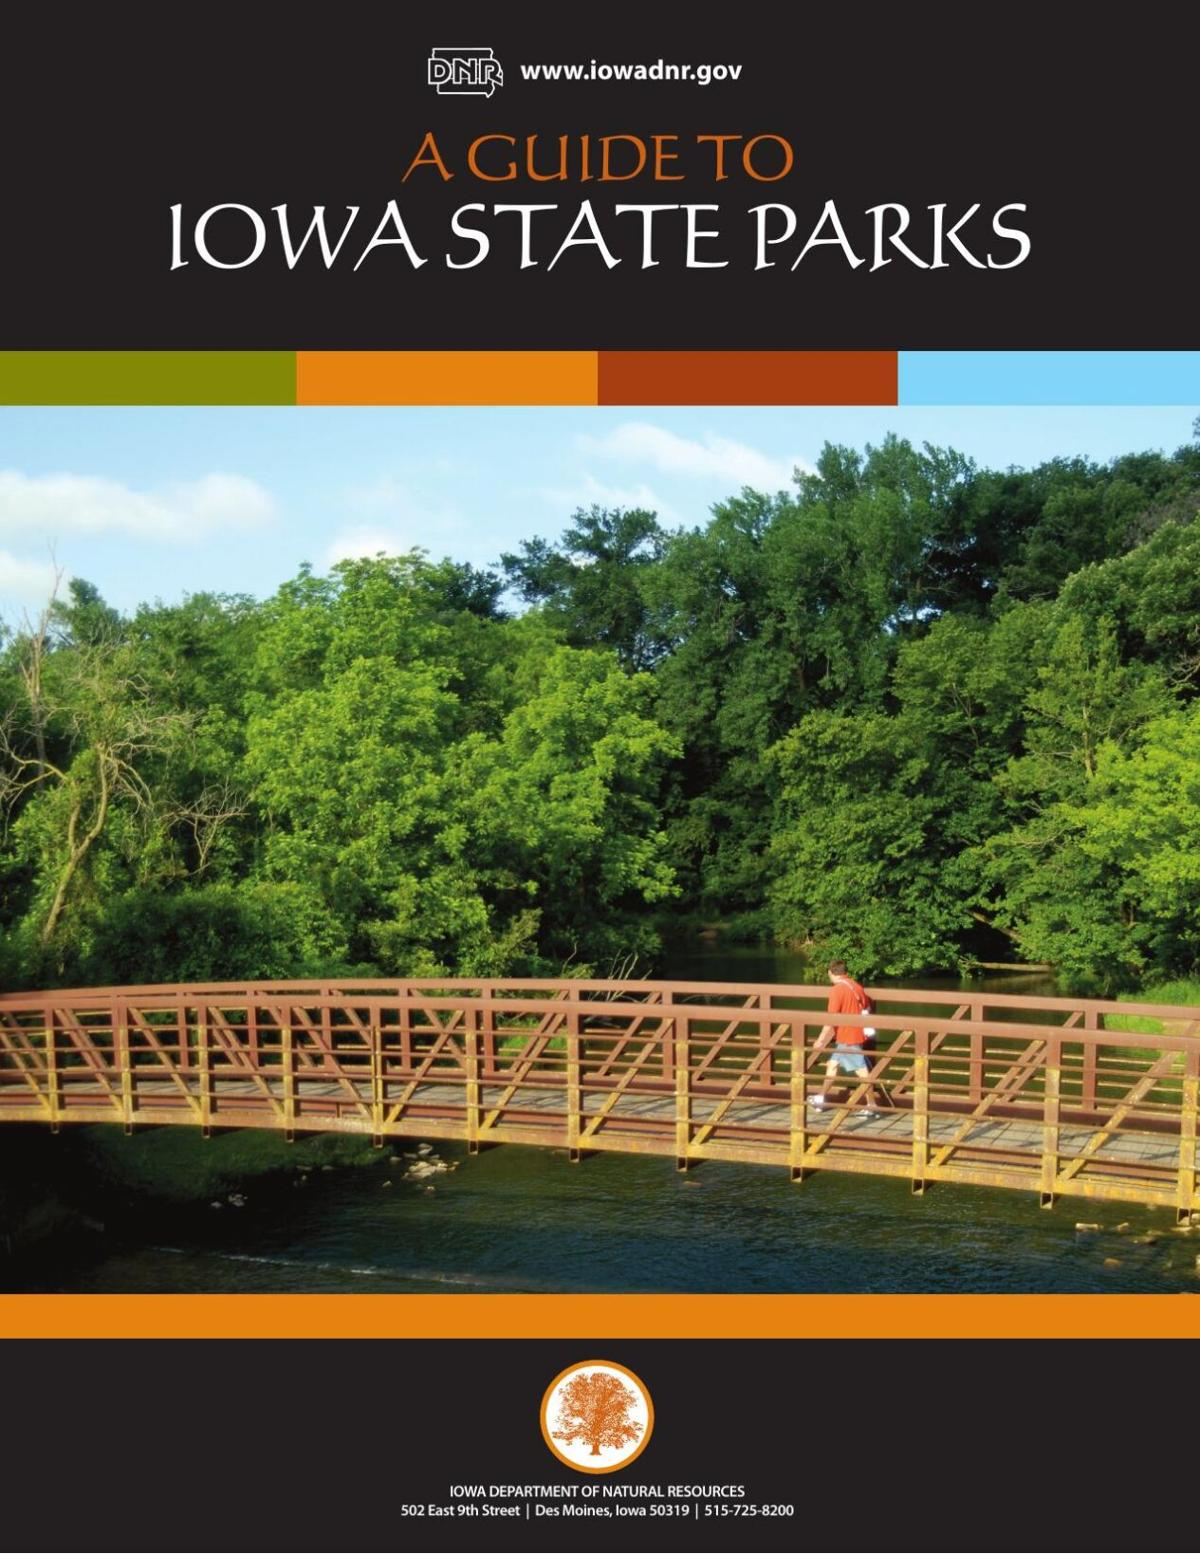 A Guide to Iowa State Parks